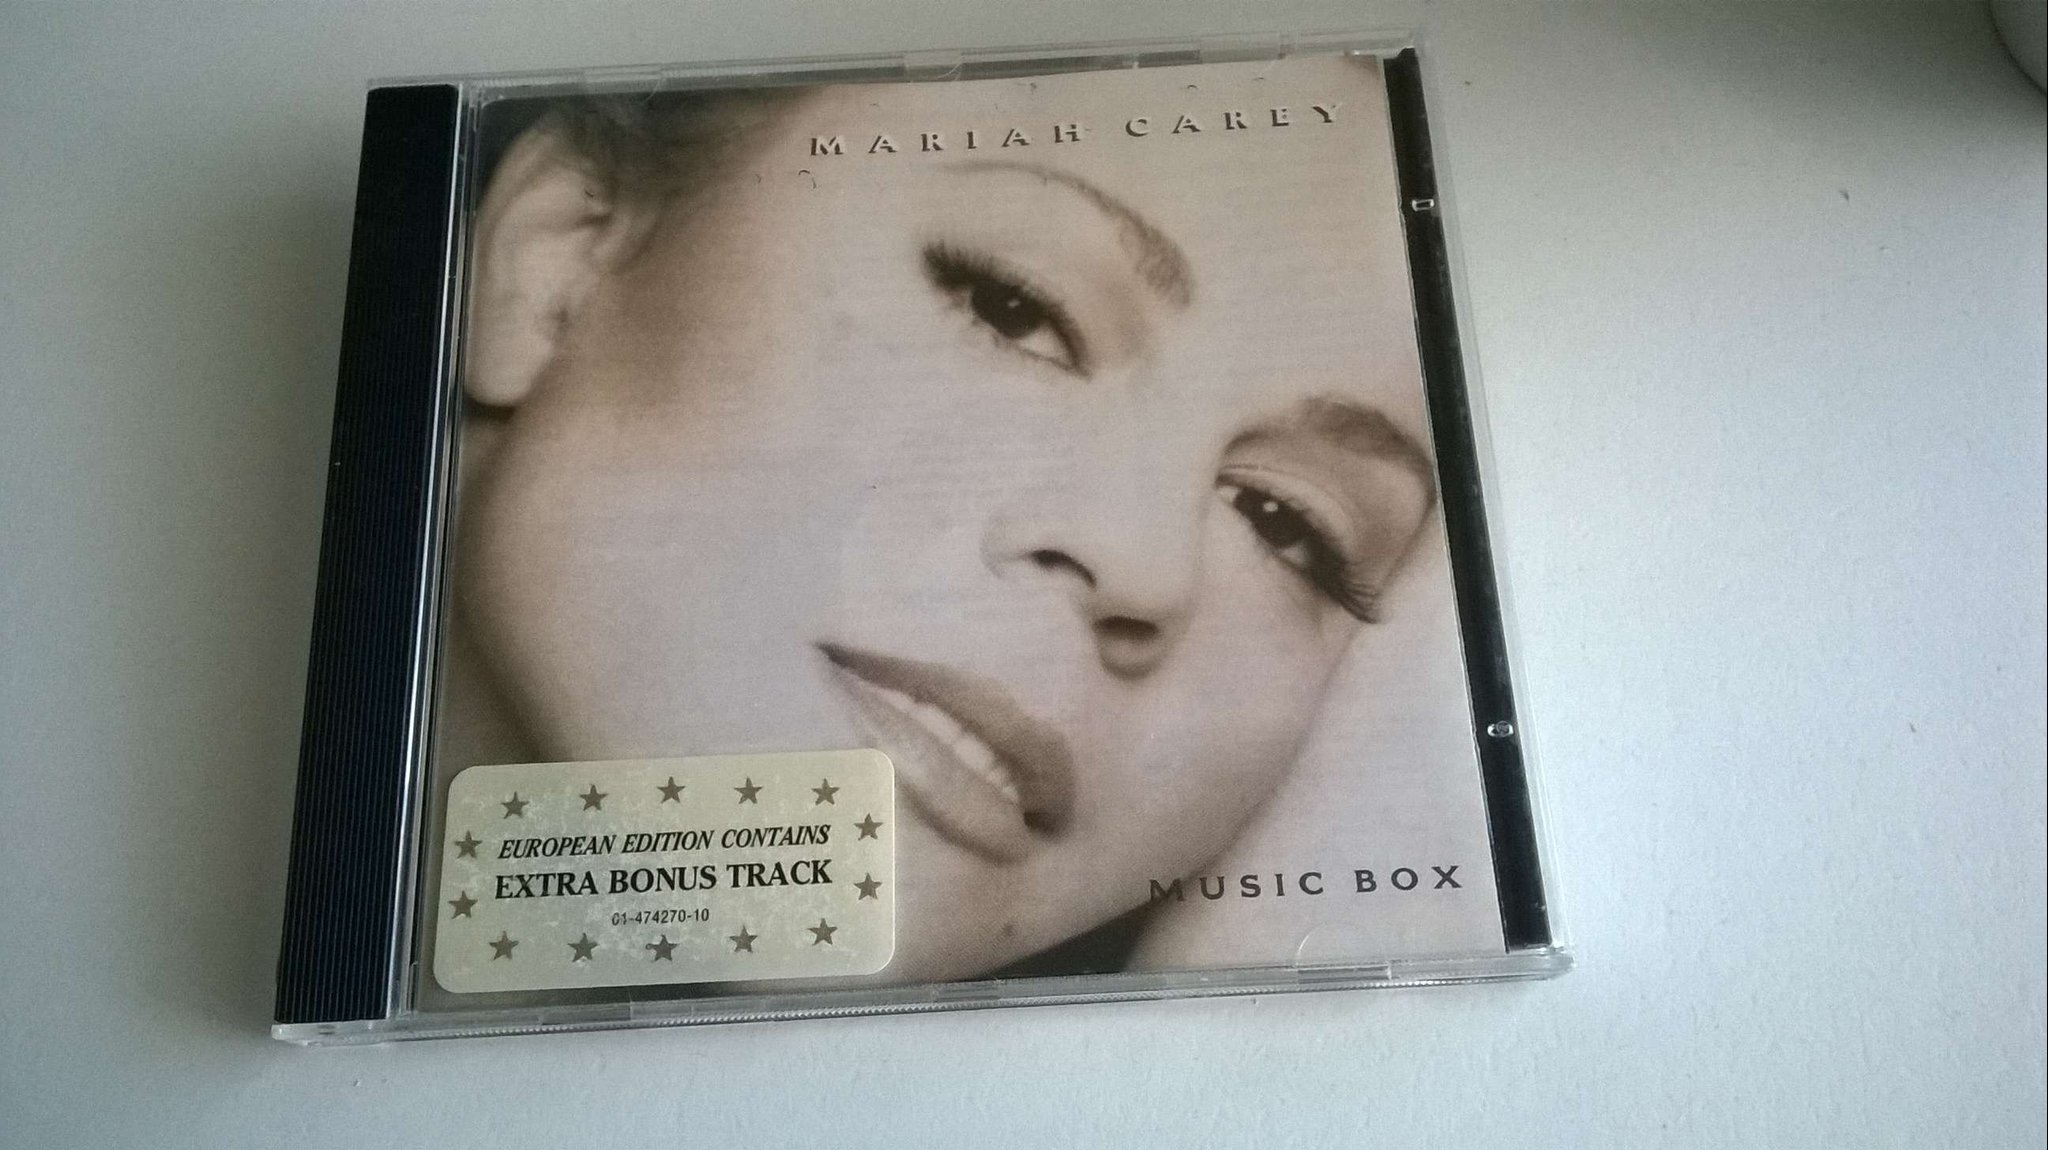 Mariah Carey ?- Music Box, CD, Album